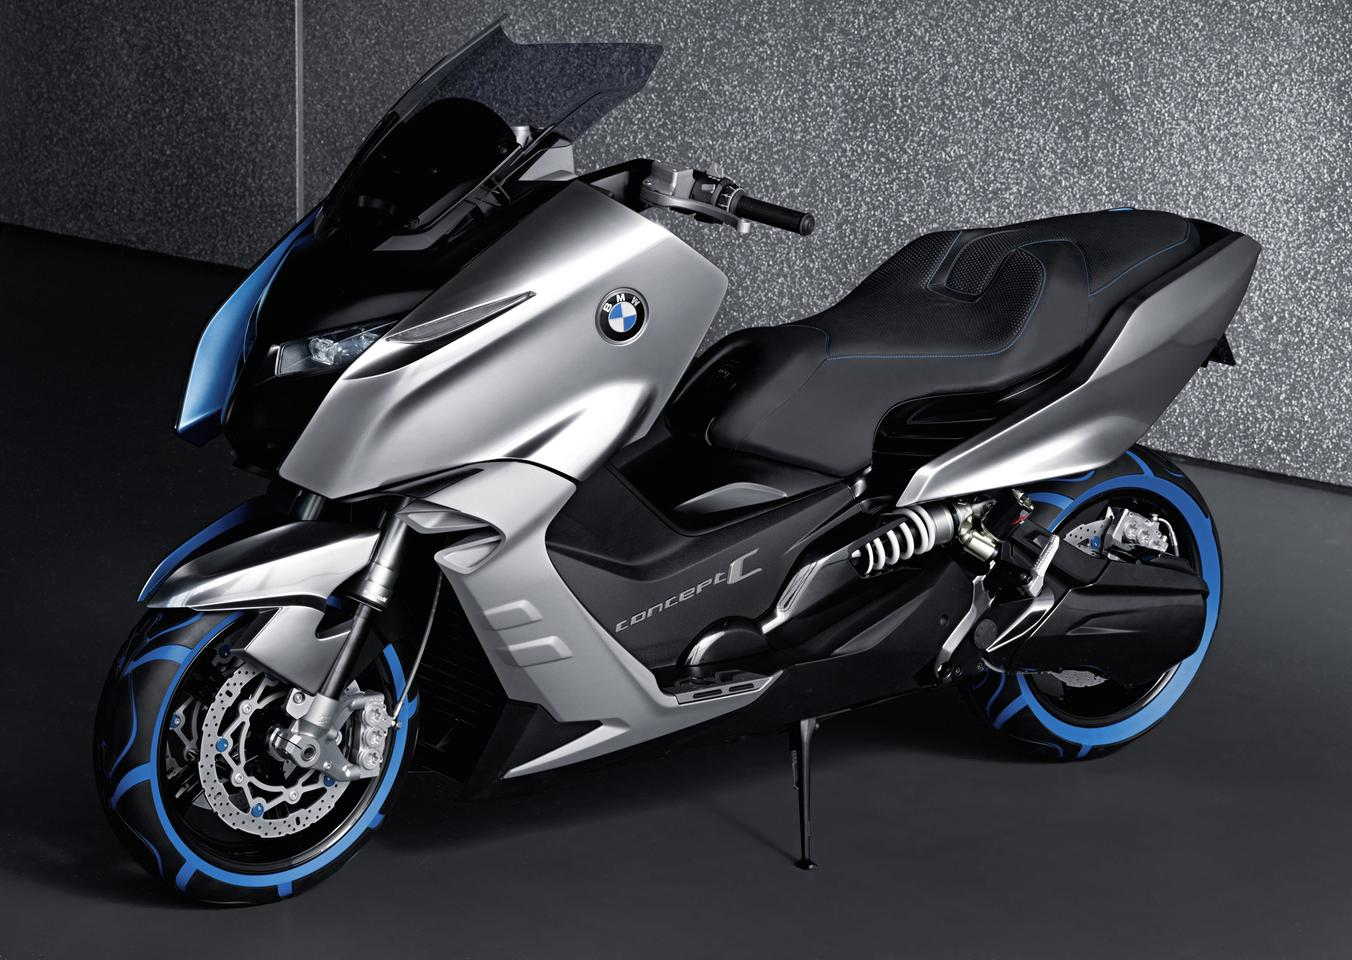 BMW's Concept C Maxi-scooter